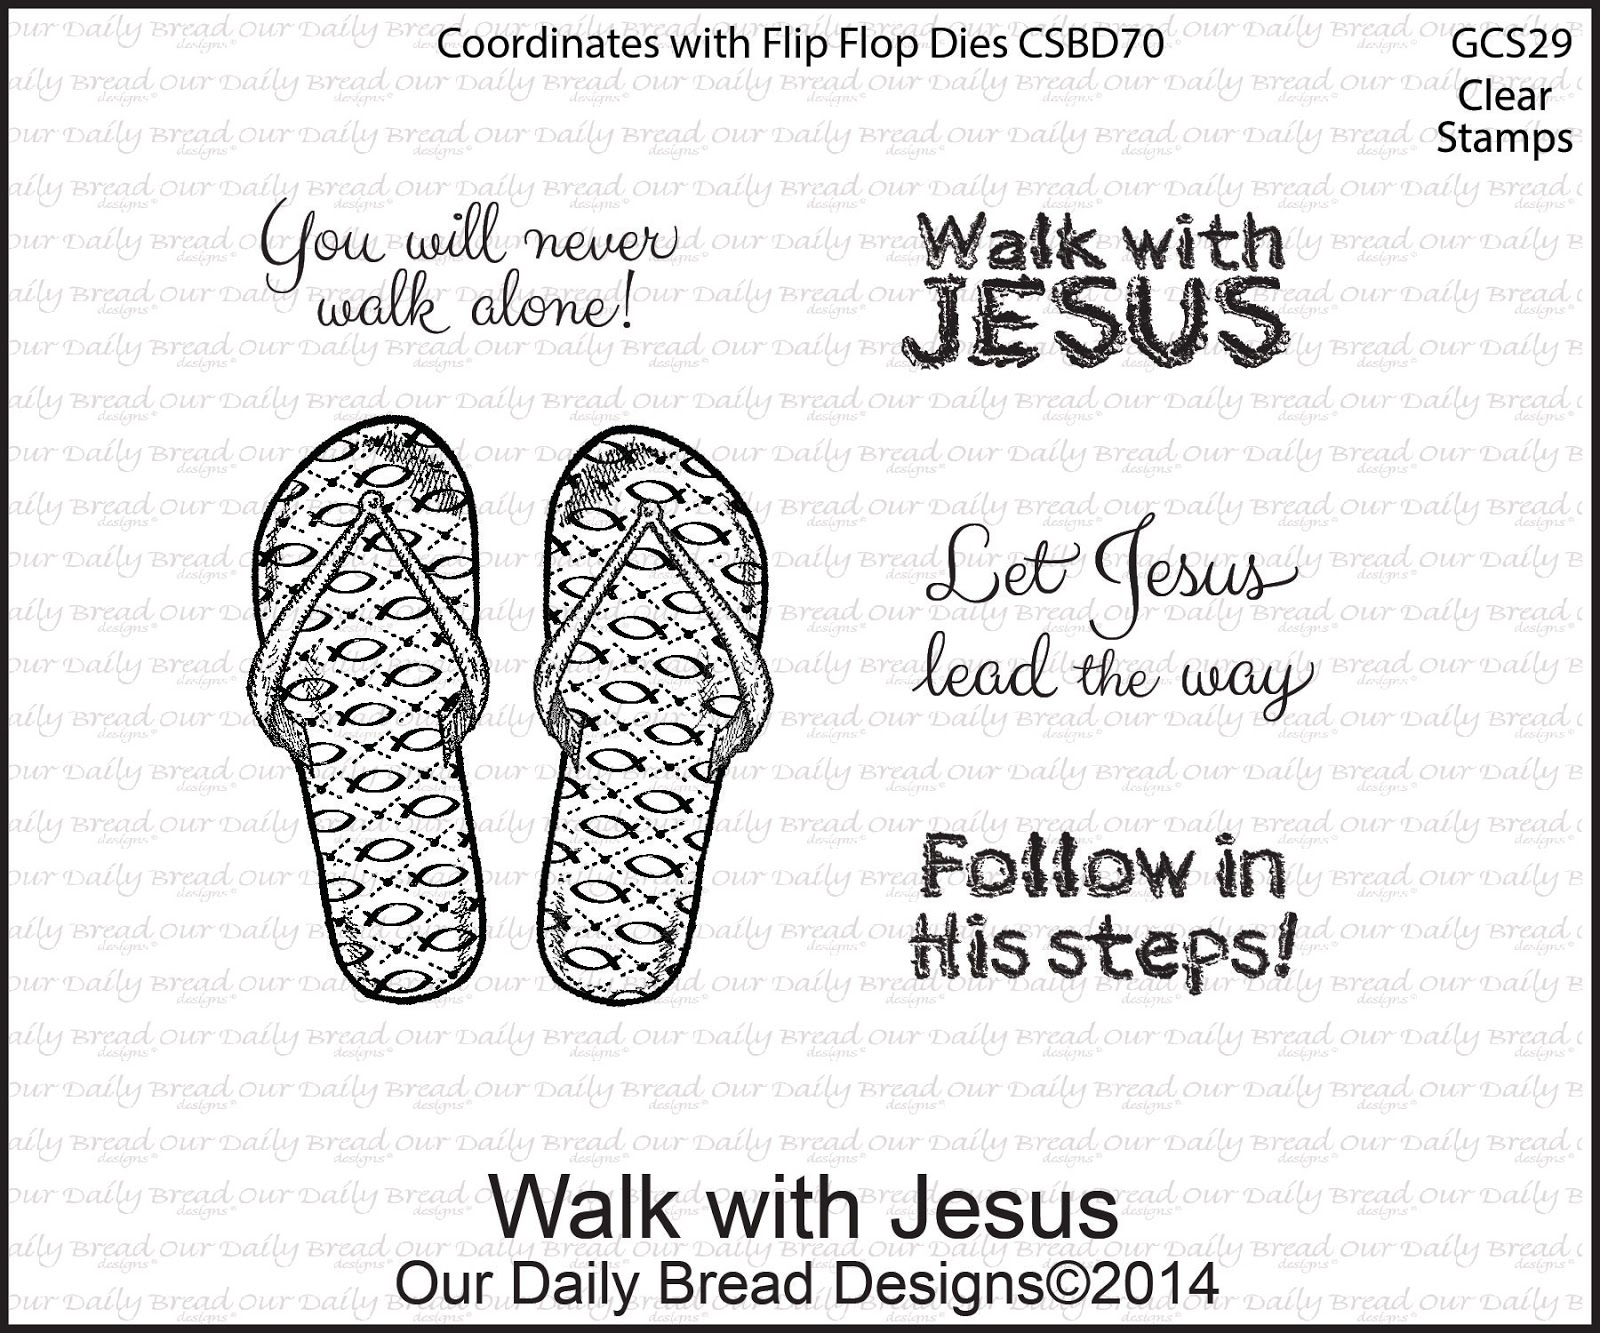 Stamps - Our Daily Bread Designs Walk with Jesus